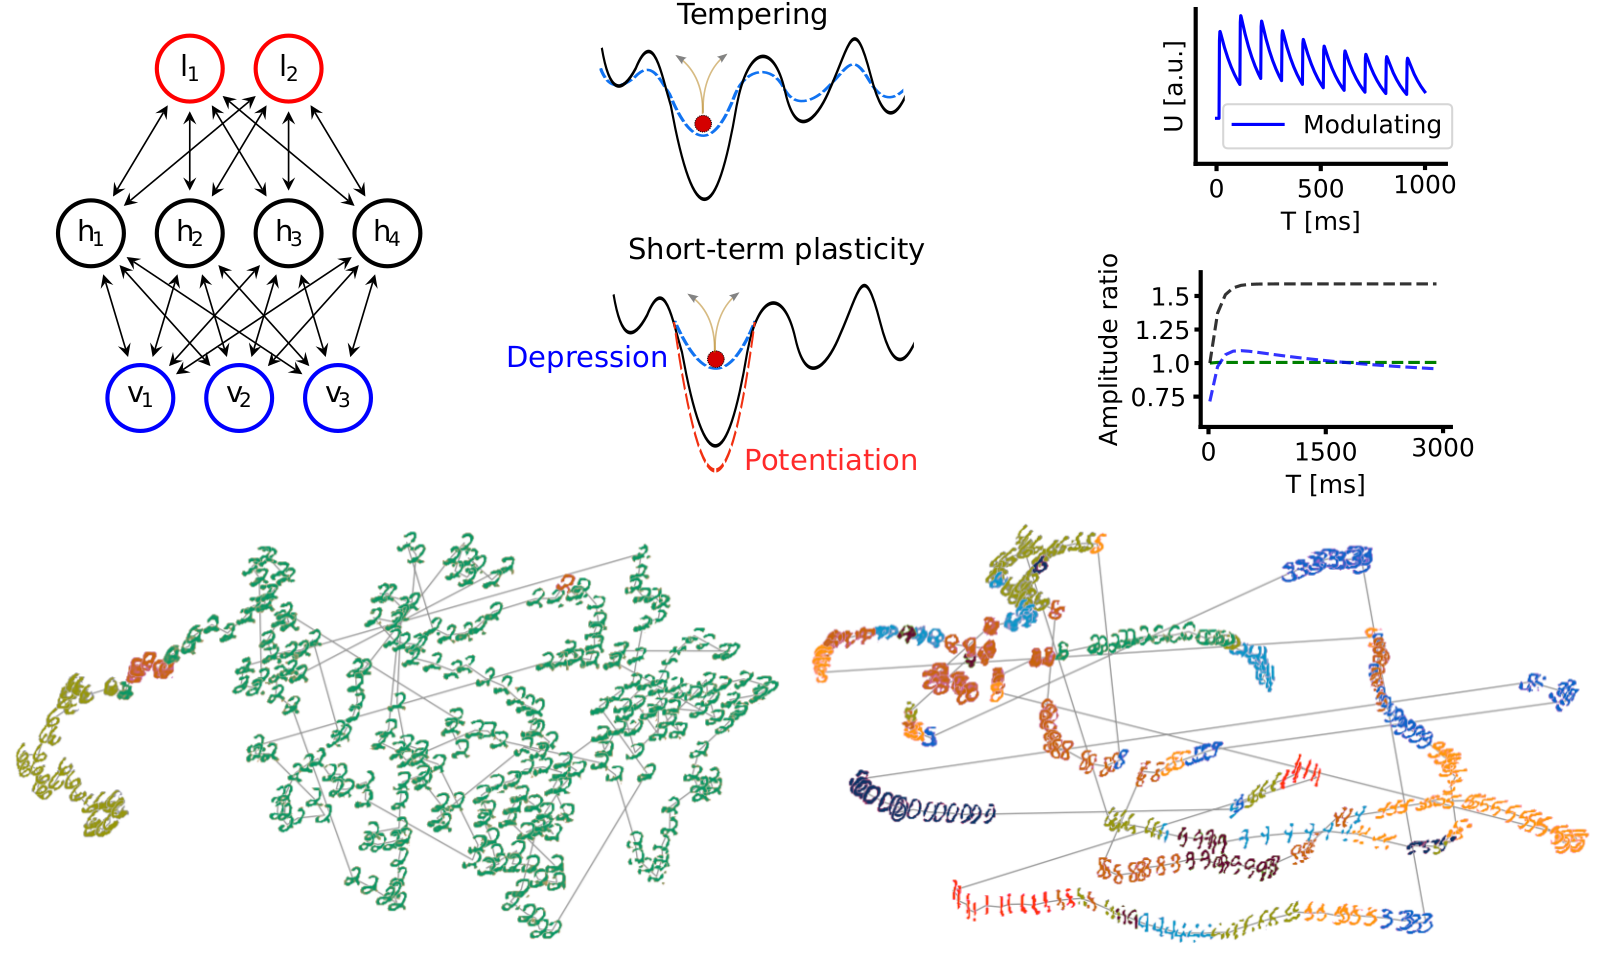 Journal paper on spike-triggered short-term plasticity